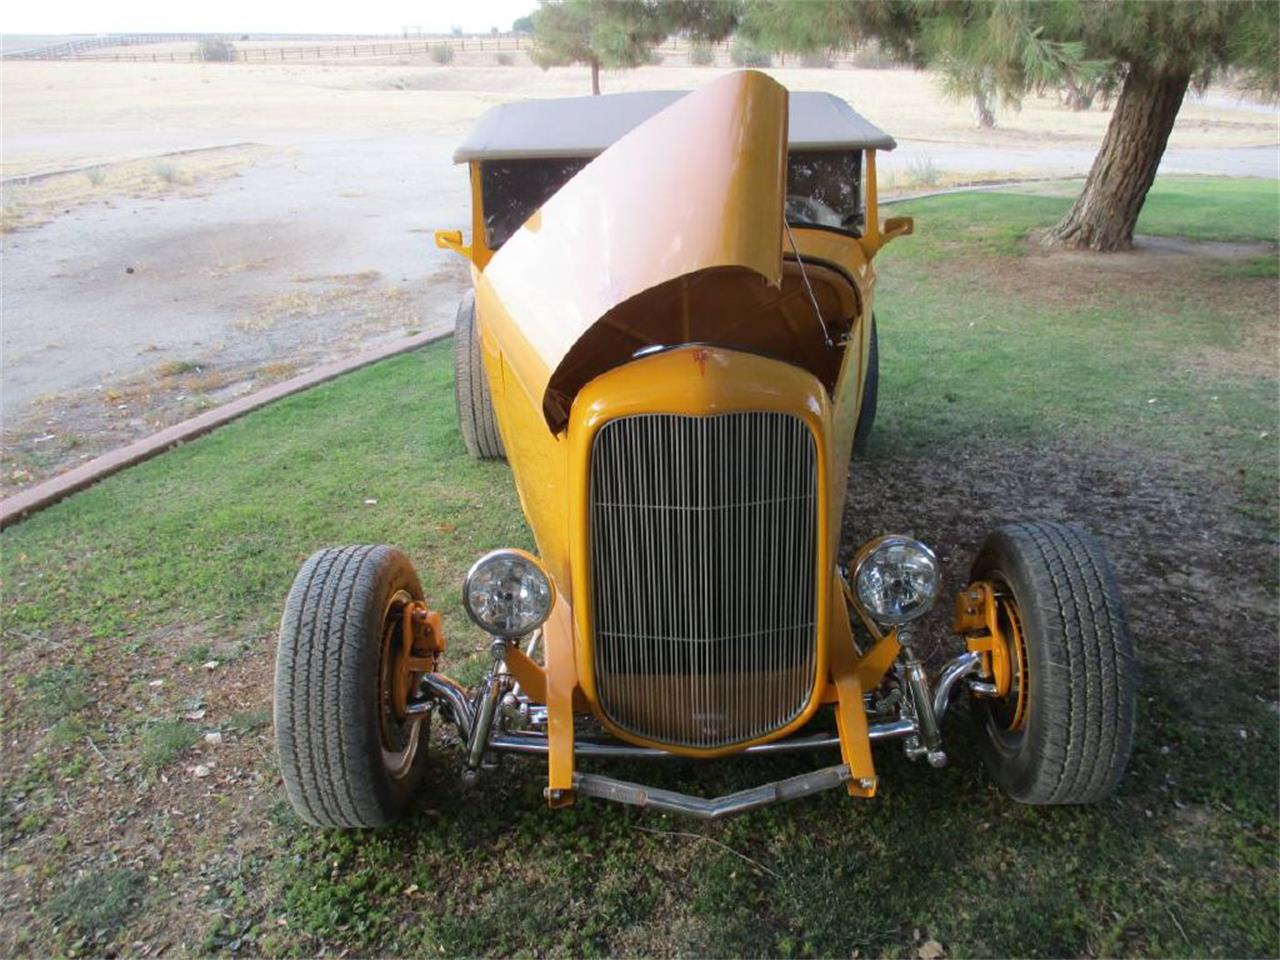 1932 Ford Roadster for sale in West Pittston, PA – photo 3